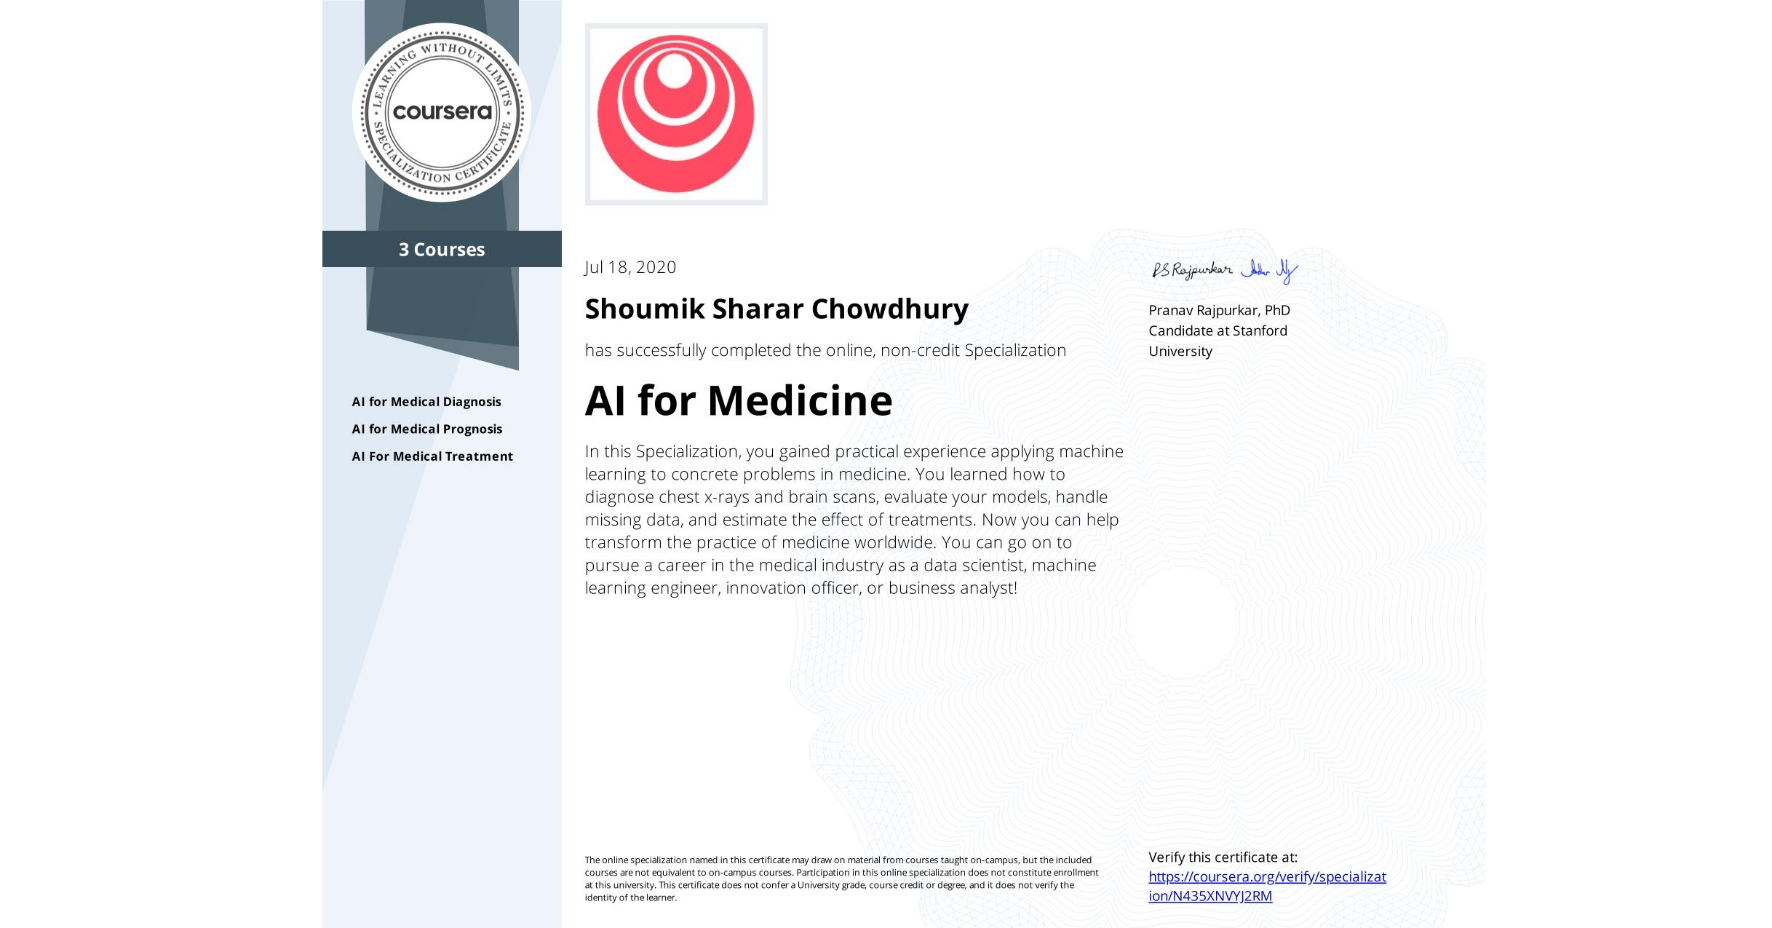 View certificate for Shoumik Sharar Chowdhury, AI for Medicine, offered through Coursera. In this Specialization, you gained practical experience applying machine learning to concrete problems in medicine. You learned how to diagnose chest x-rays and brain scans, evaluate your models, handle missing data, and estimate the effect of treatments.   Now you can help transform the practice of medicine worldwide. You can go on to pursue a career in the medical industry as a data scientist, machine learning engineer, innovation officer, or business analyst!